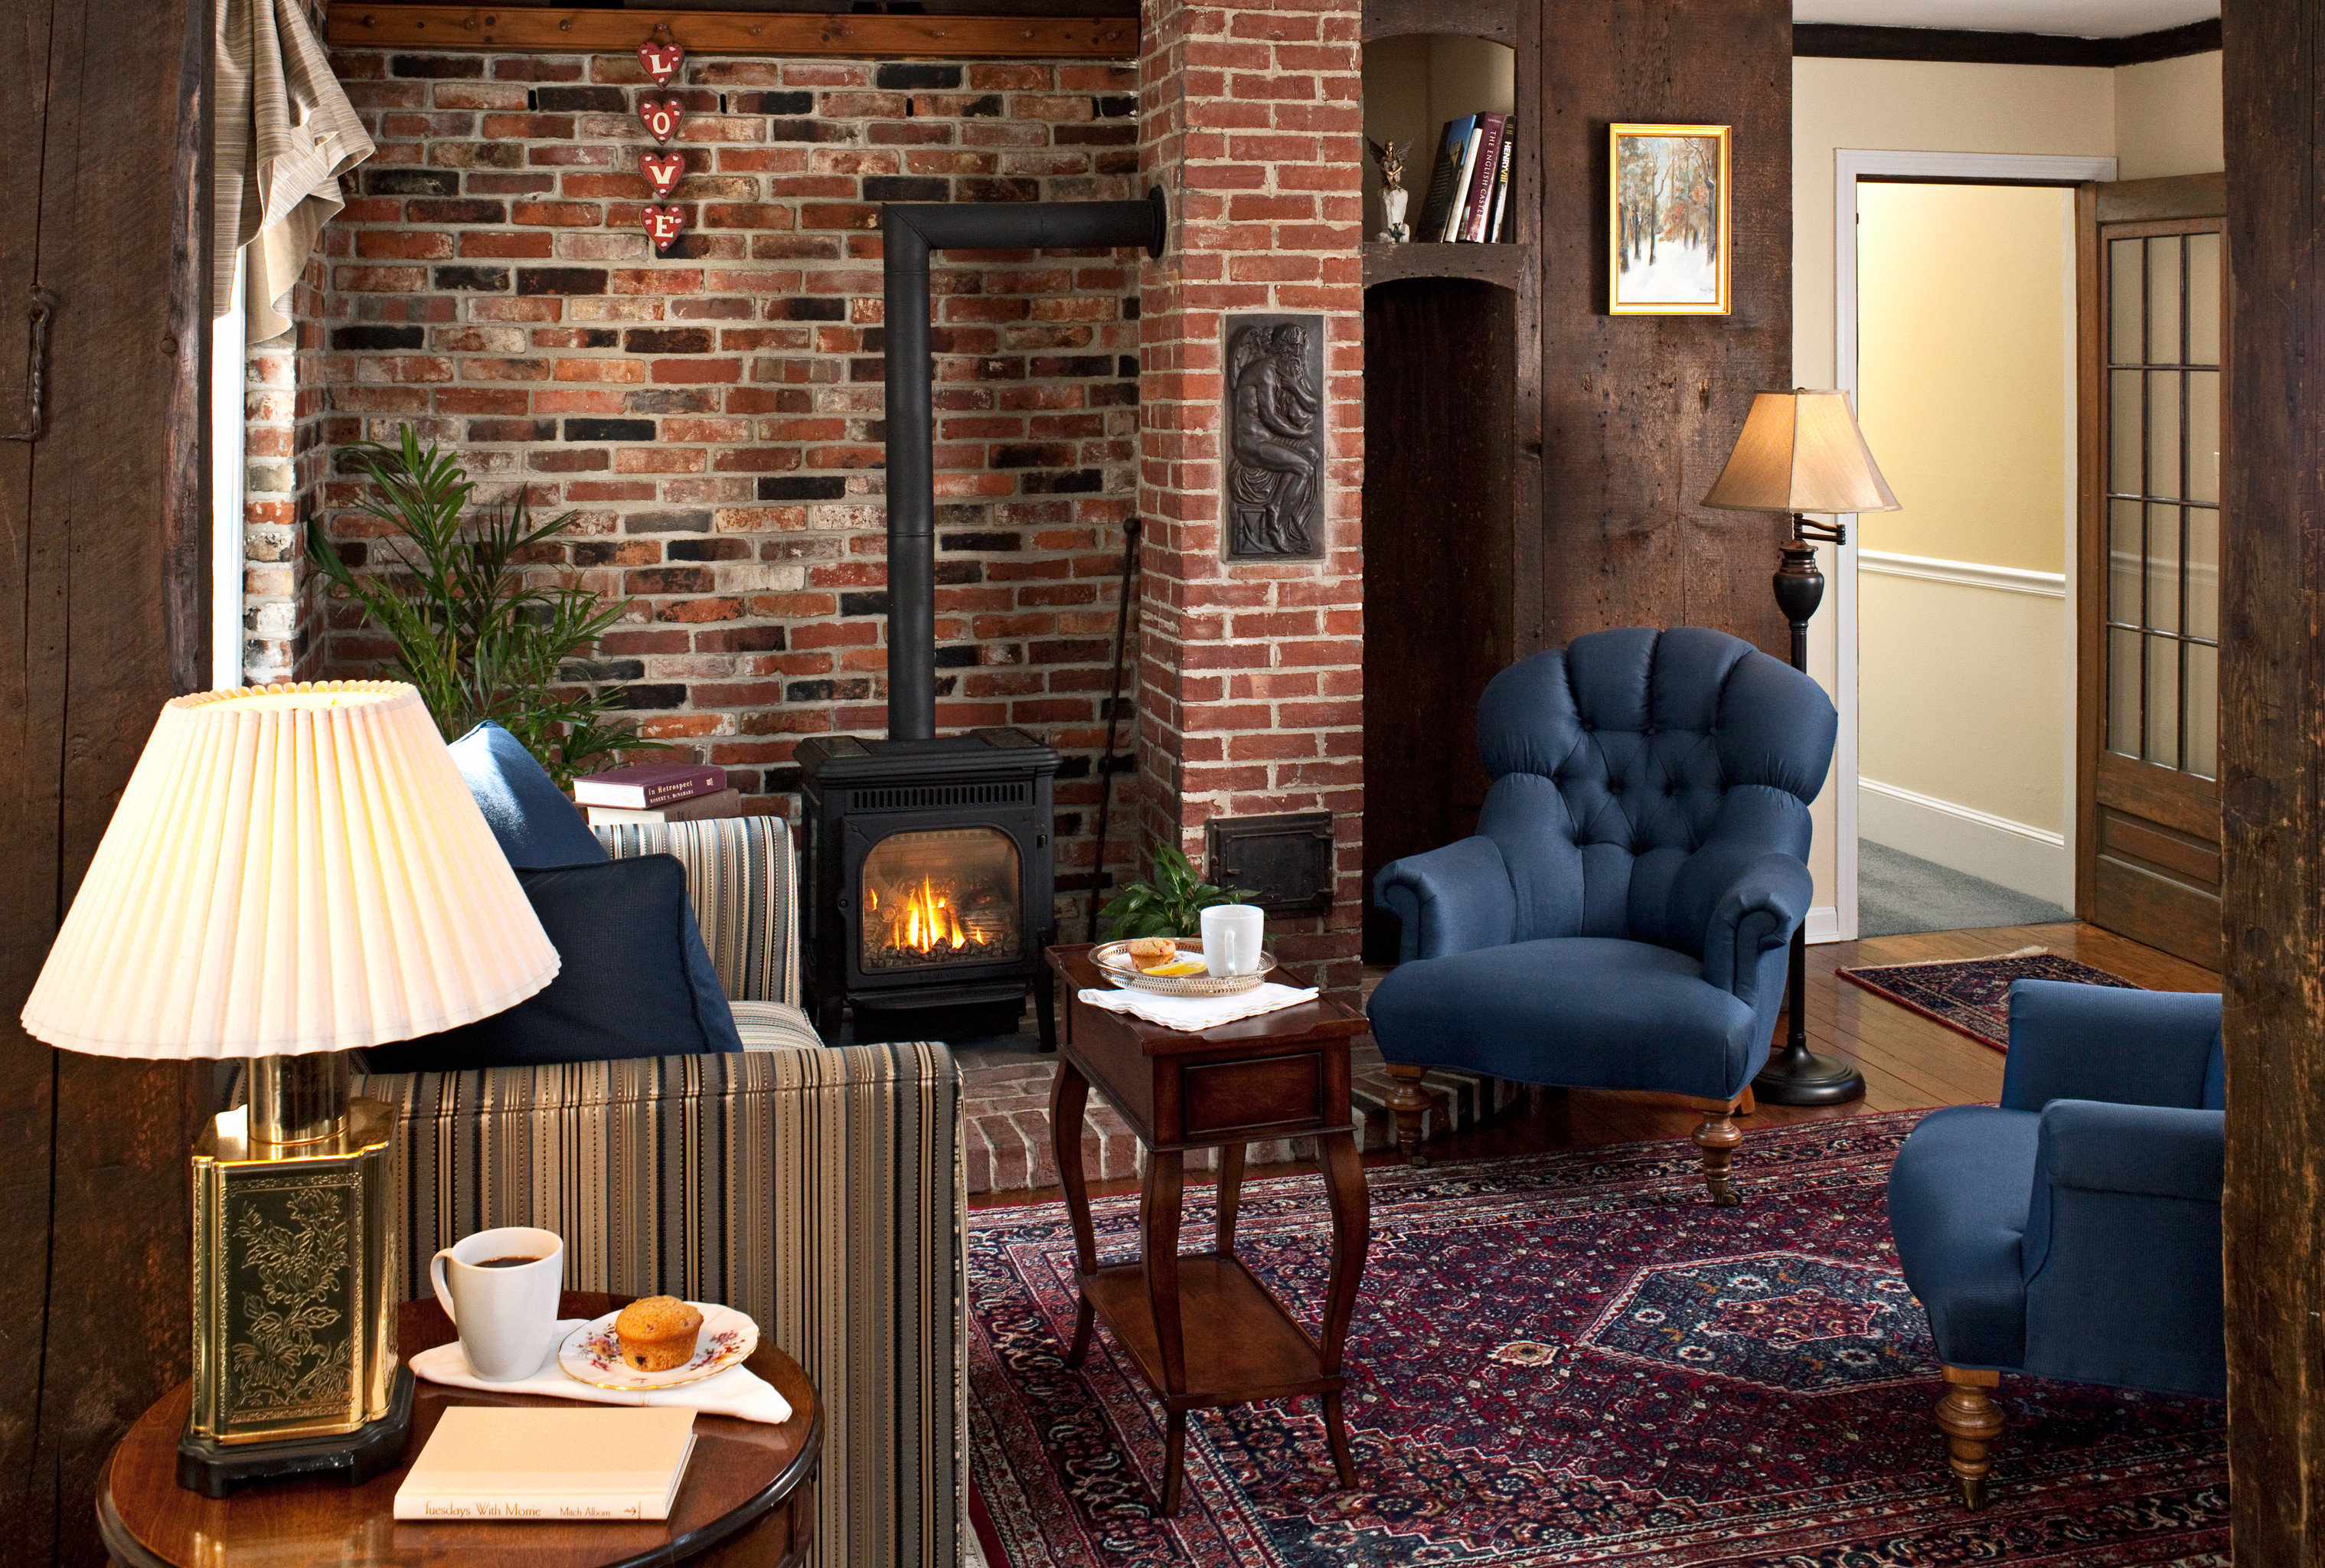 B&B Country Fireplace Historic Lounge chair property living room home house cottage lighting farmhouse stone